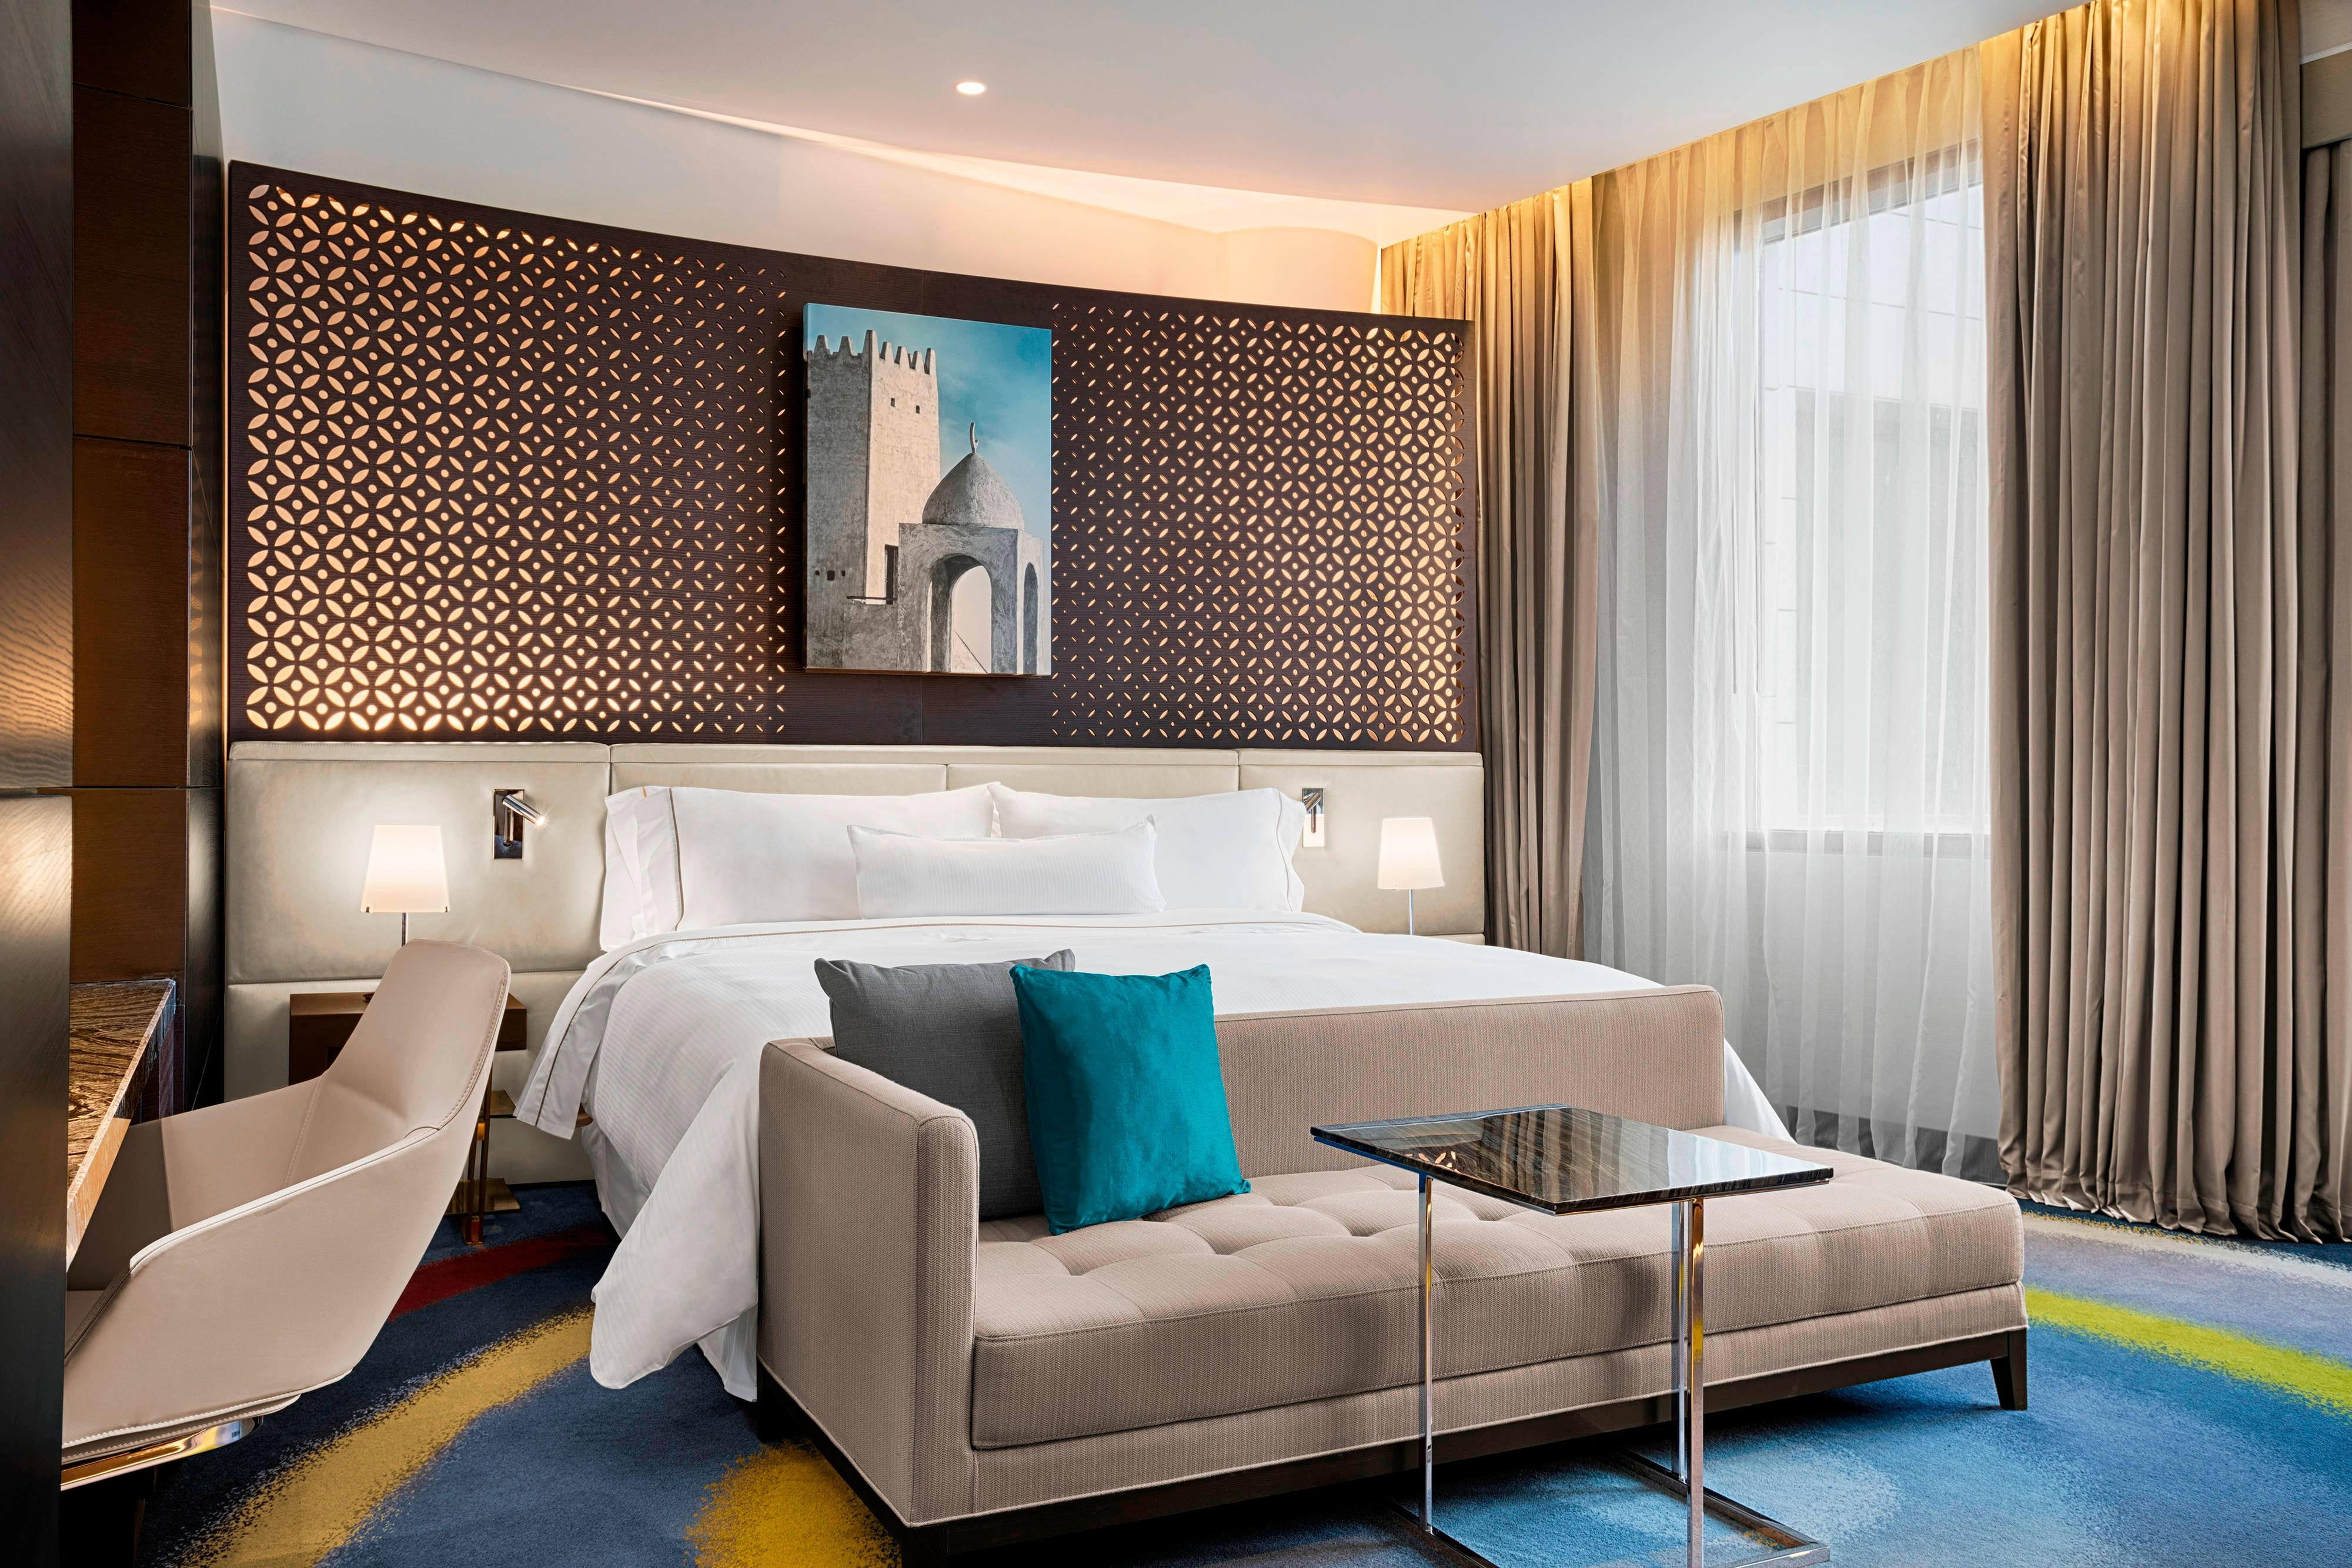 Rest well in a signature Westin Heavenly® Bed with its customary pillow-topped mattress, down duvet and inviting, fluffy pillows found in every Deluxe Room.